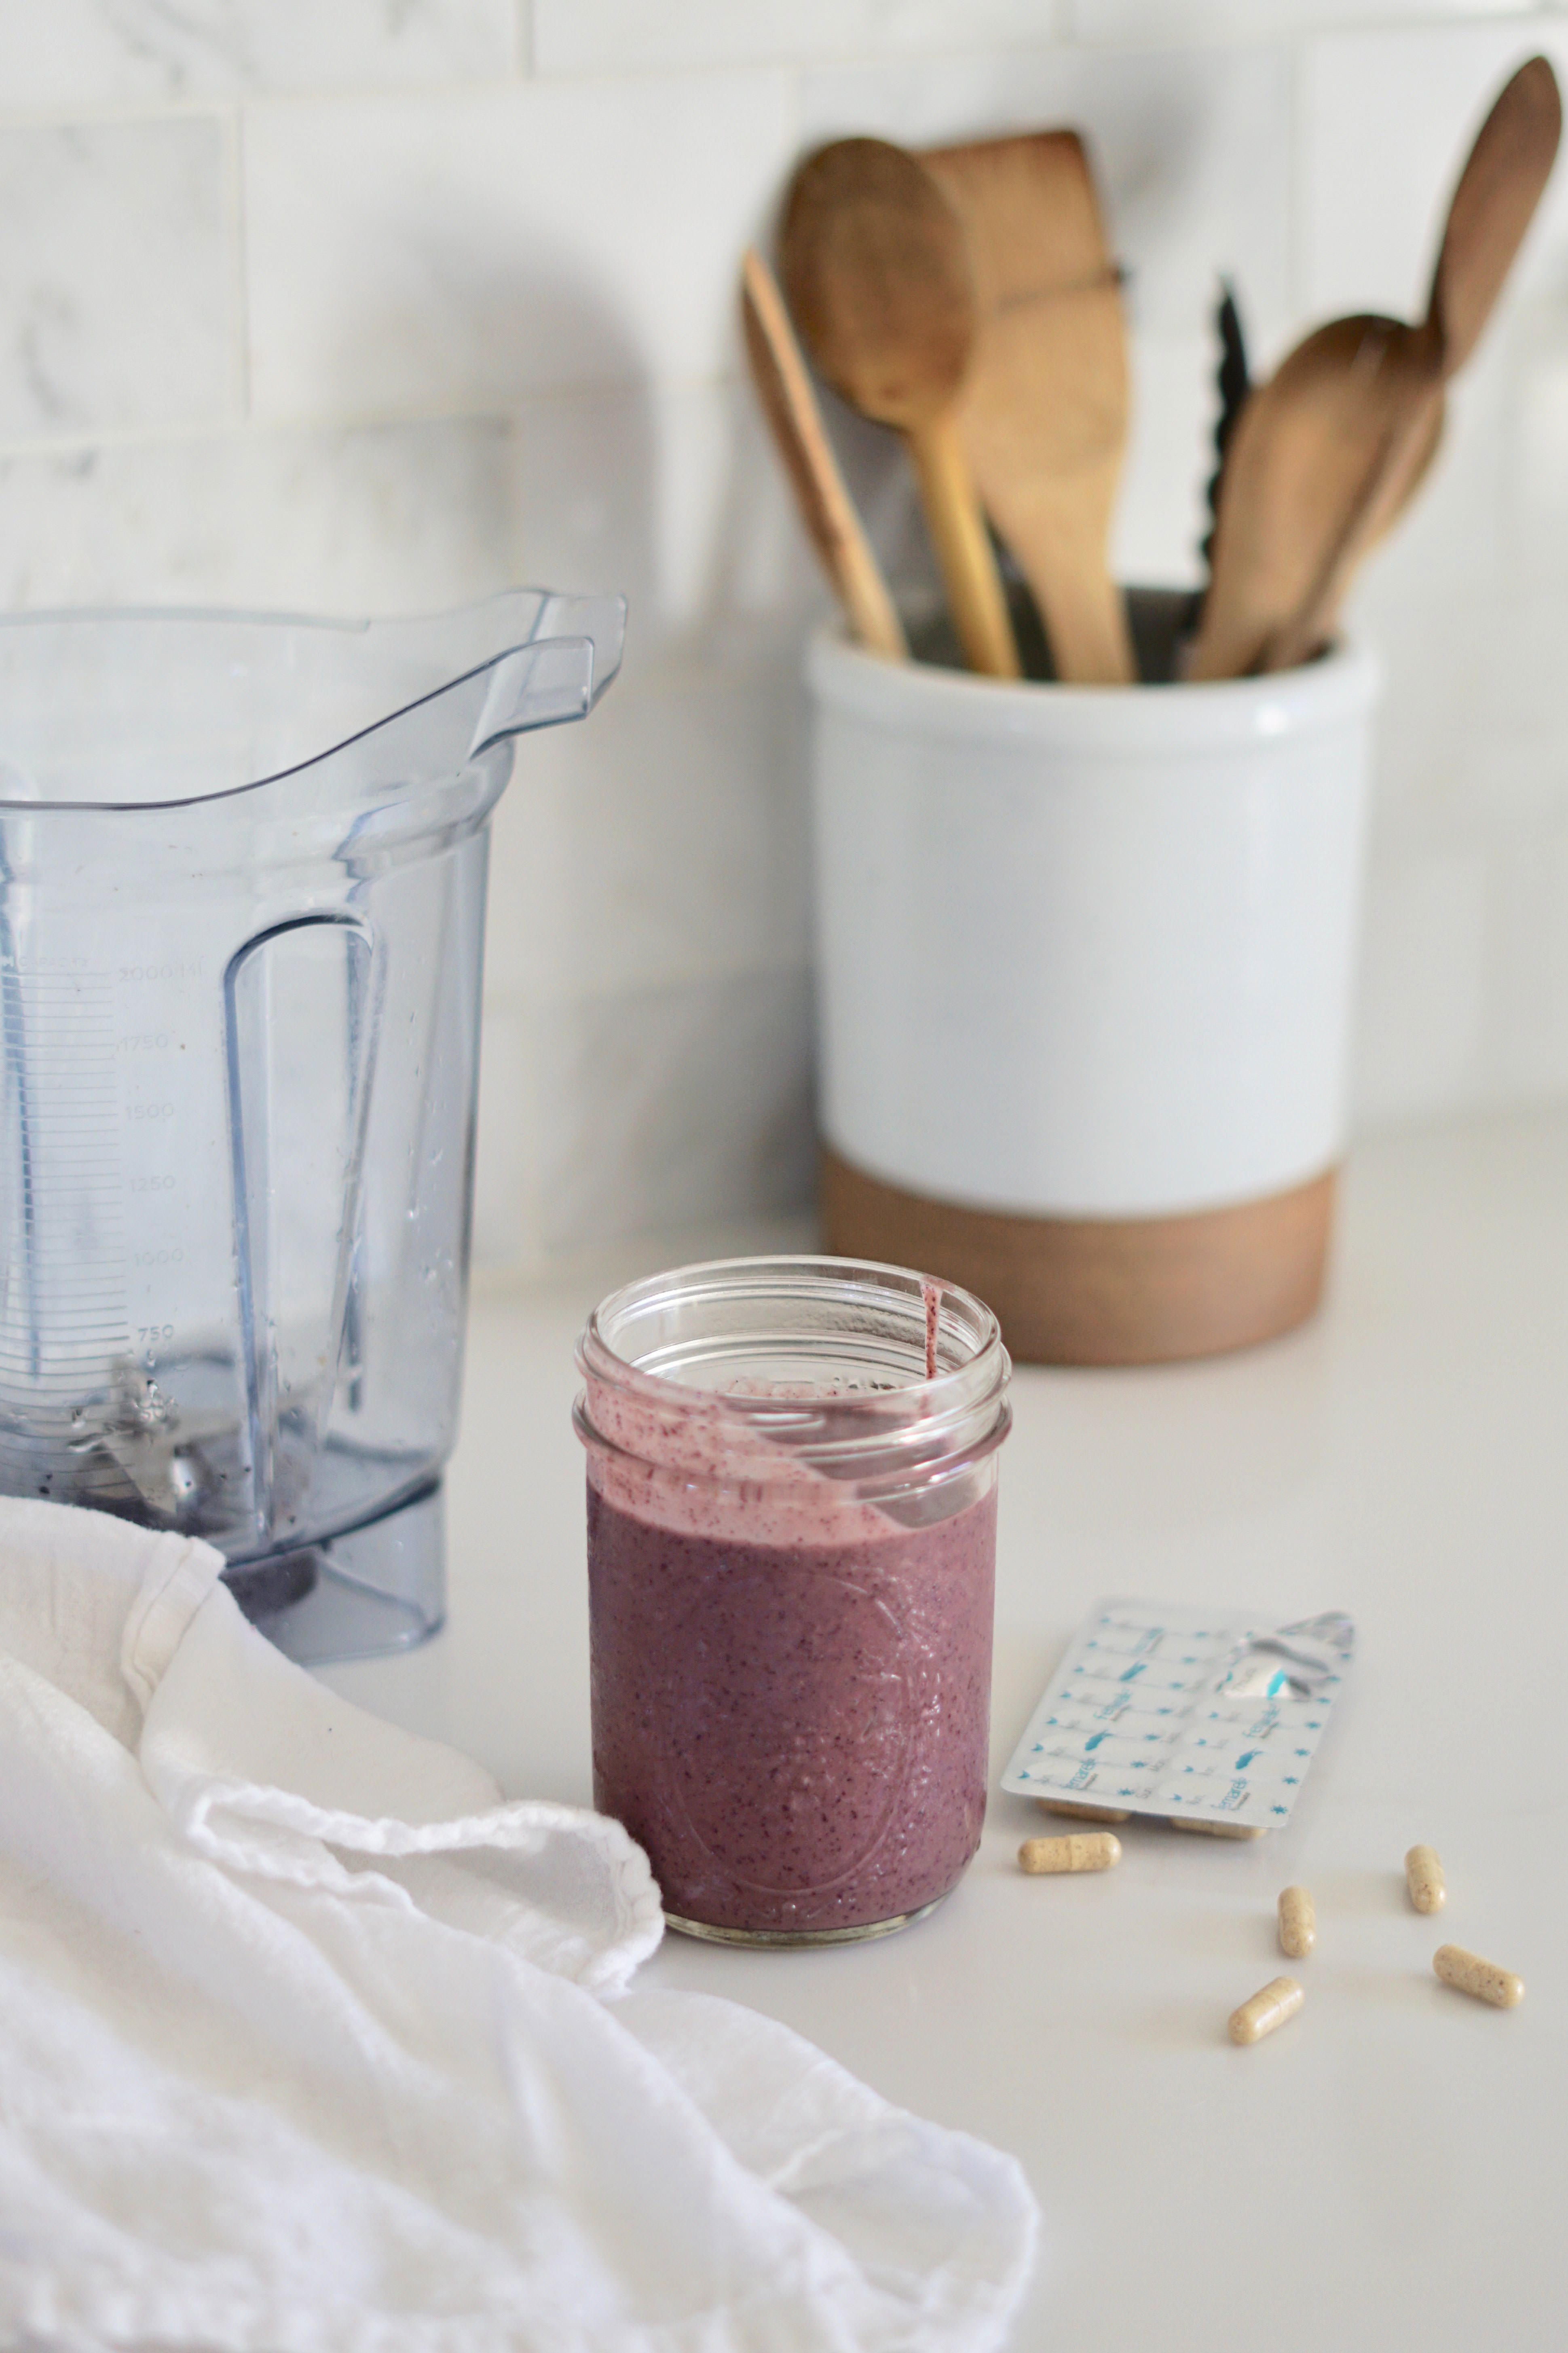 Photo of a fruit shake and supplements on a kitchen table